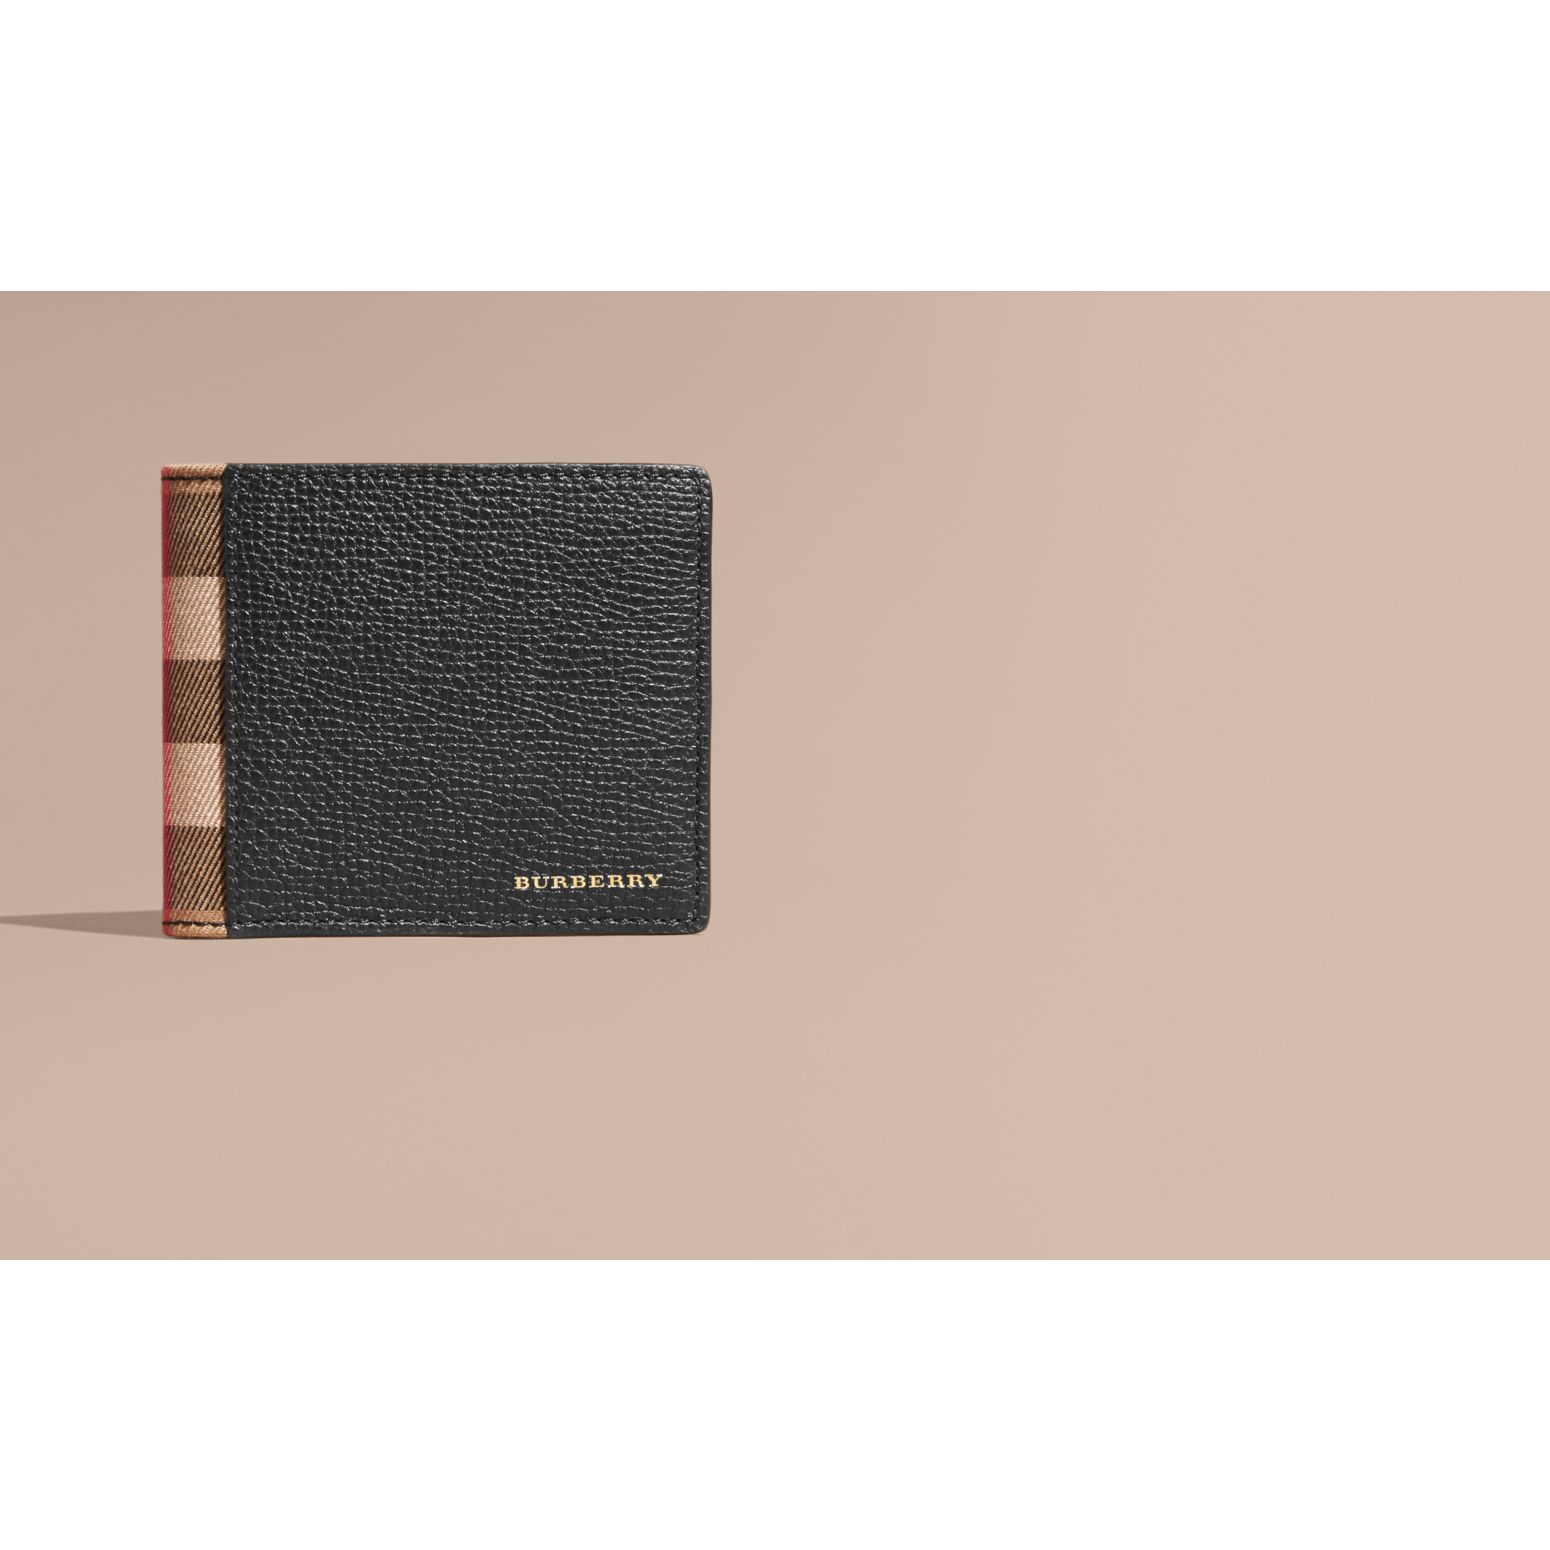 Leather and House Check International Bifold Wallet in Black | Burberry Australia - gallery image 2